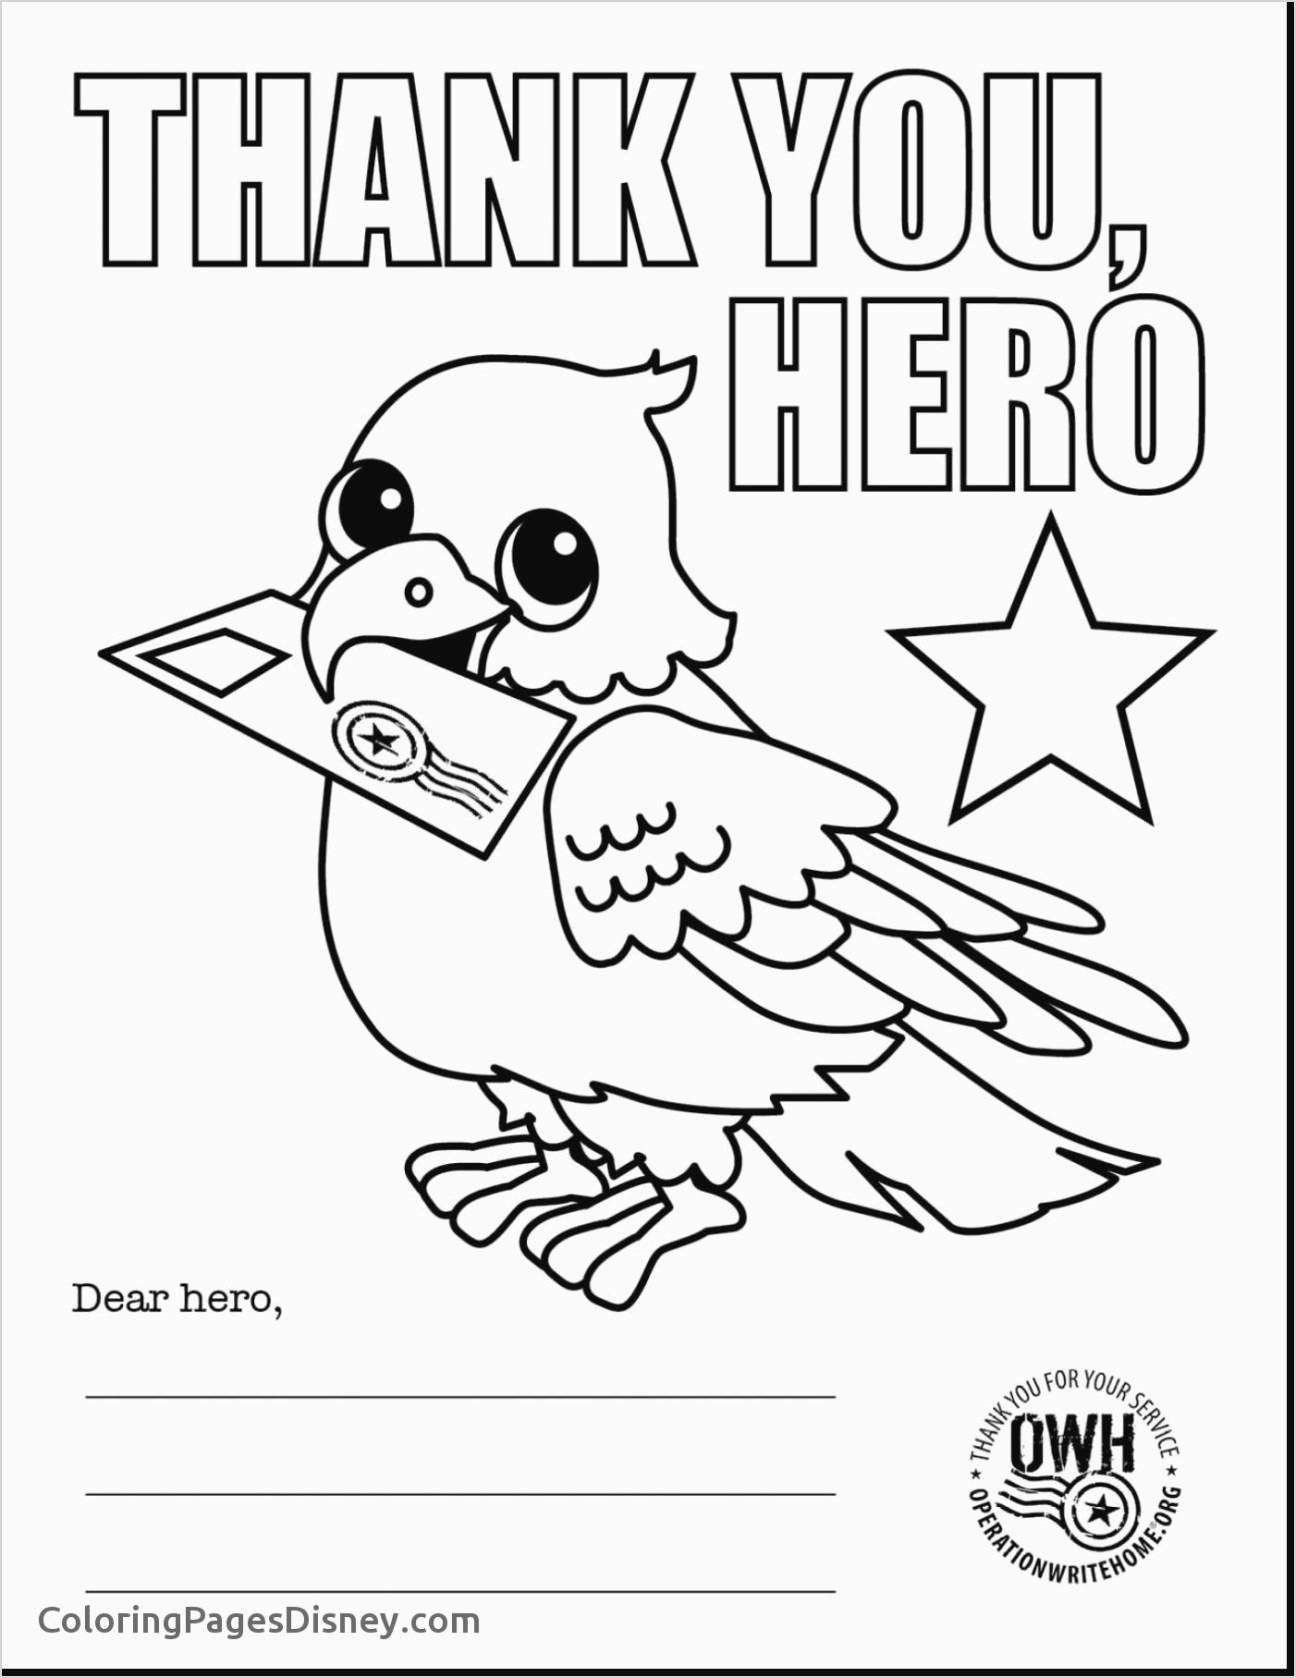 Pin By Stacypayan On Preschool Bird Theme In 2021 Disney Princess Coloring Pages Bird Coloring Pages Coloring Pages Inspirational [ 1678 x 1296 Pixel ]